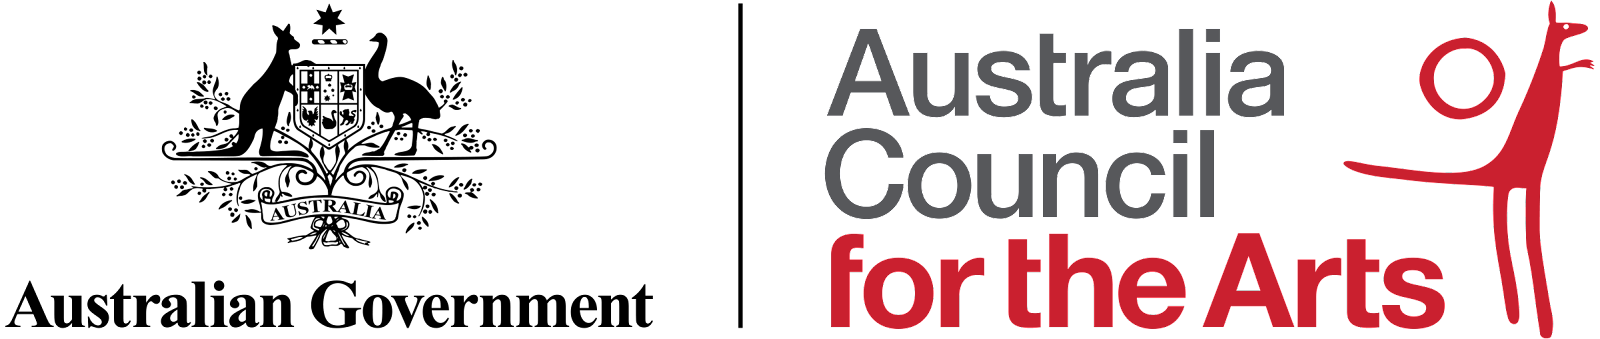 Logo downloads | Australia Council